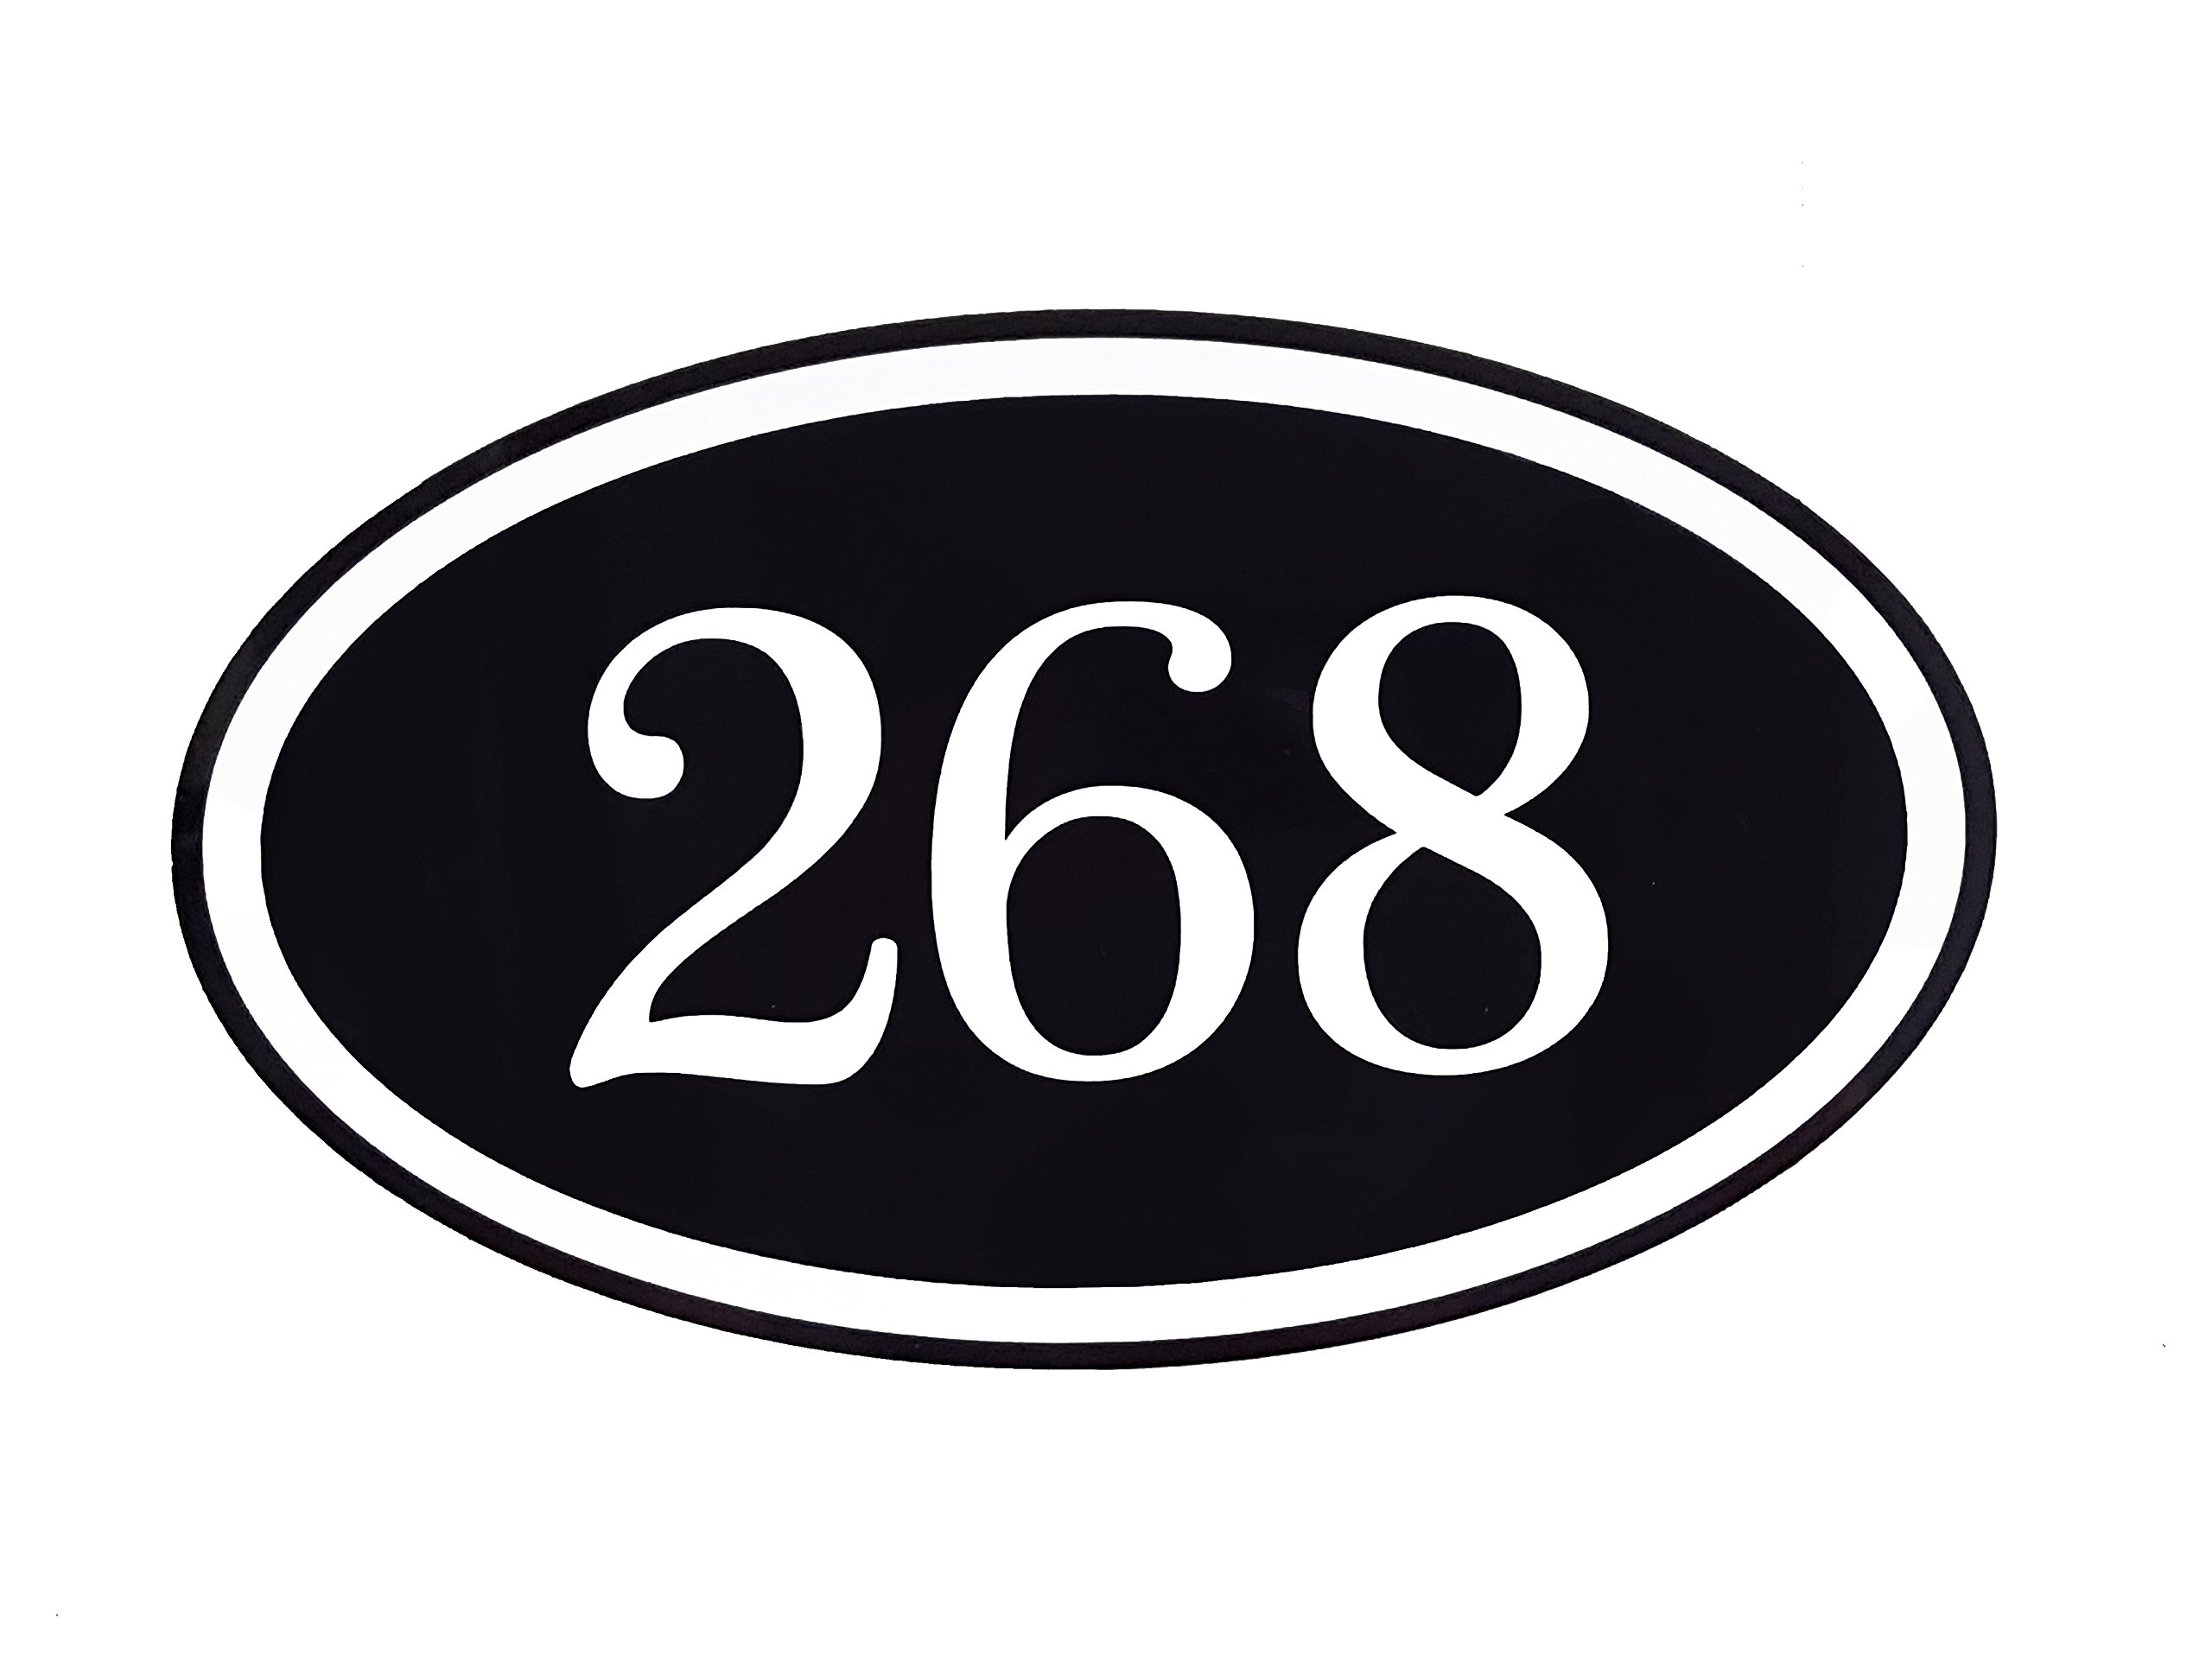 Personalized Home Address Plaque Custom Aluminum 12'' x 7'' Sign With Your Address Number